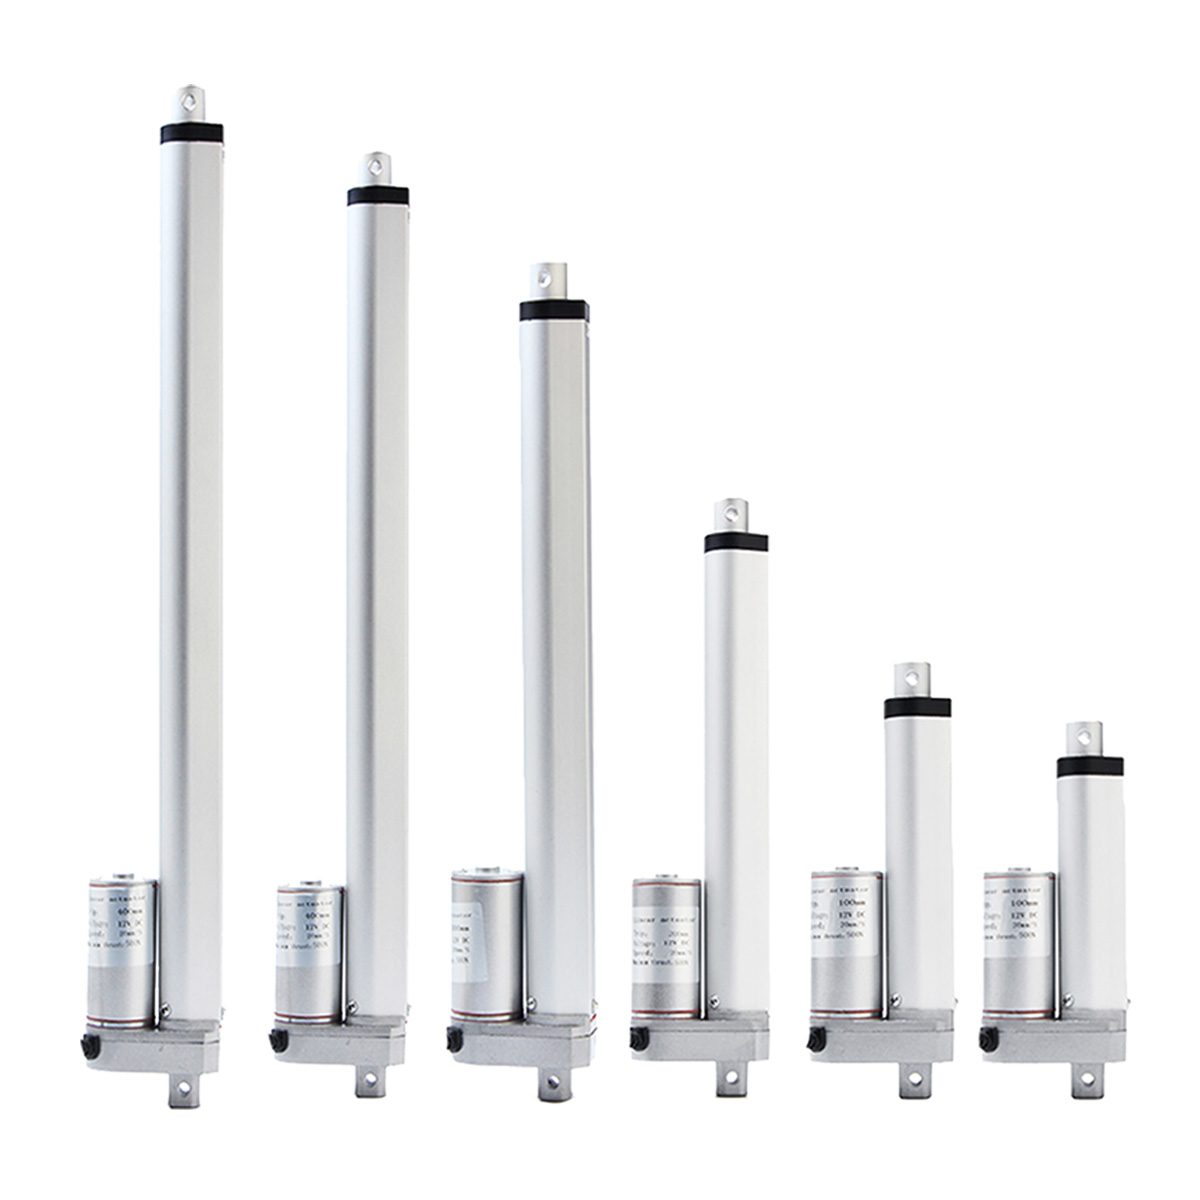 NEW 2 4 8 <font><b>12</b></font> <font><b>16</b></font> 20 inch 900N 12V 16mm / s Small DC Electric Push Rod White Material Aluminum Alloy Linear Actuator Motor image